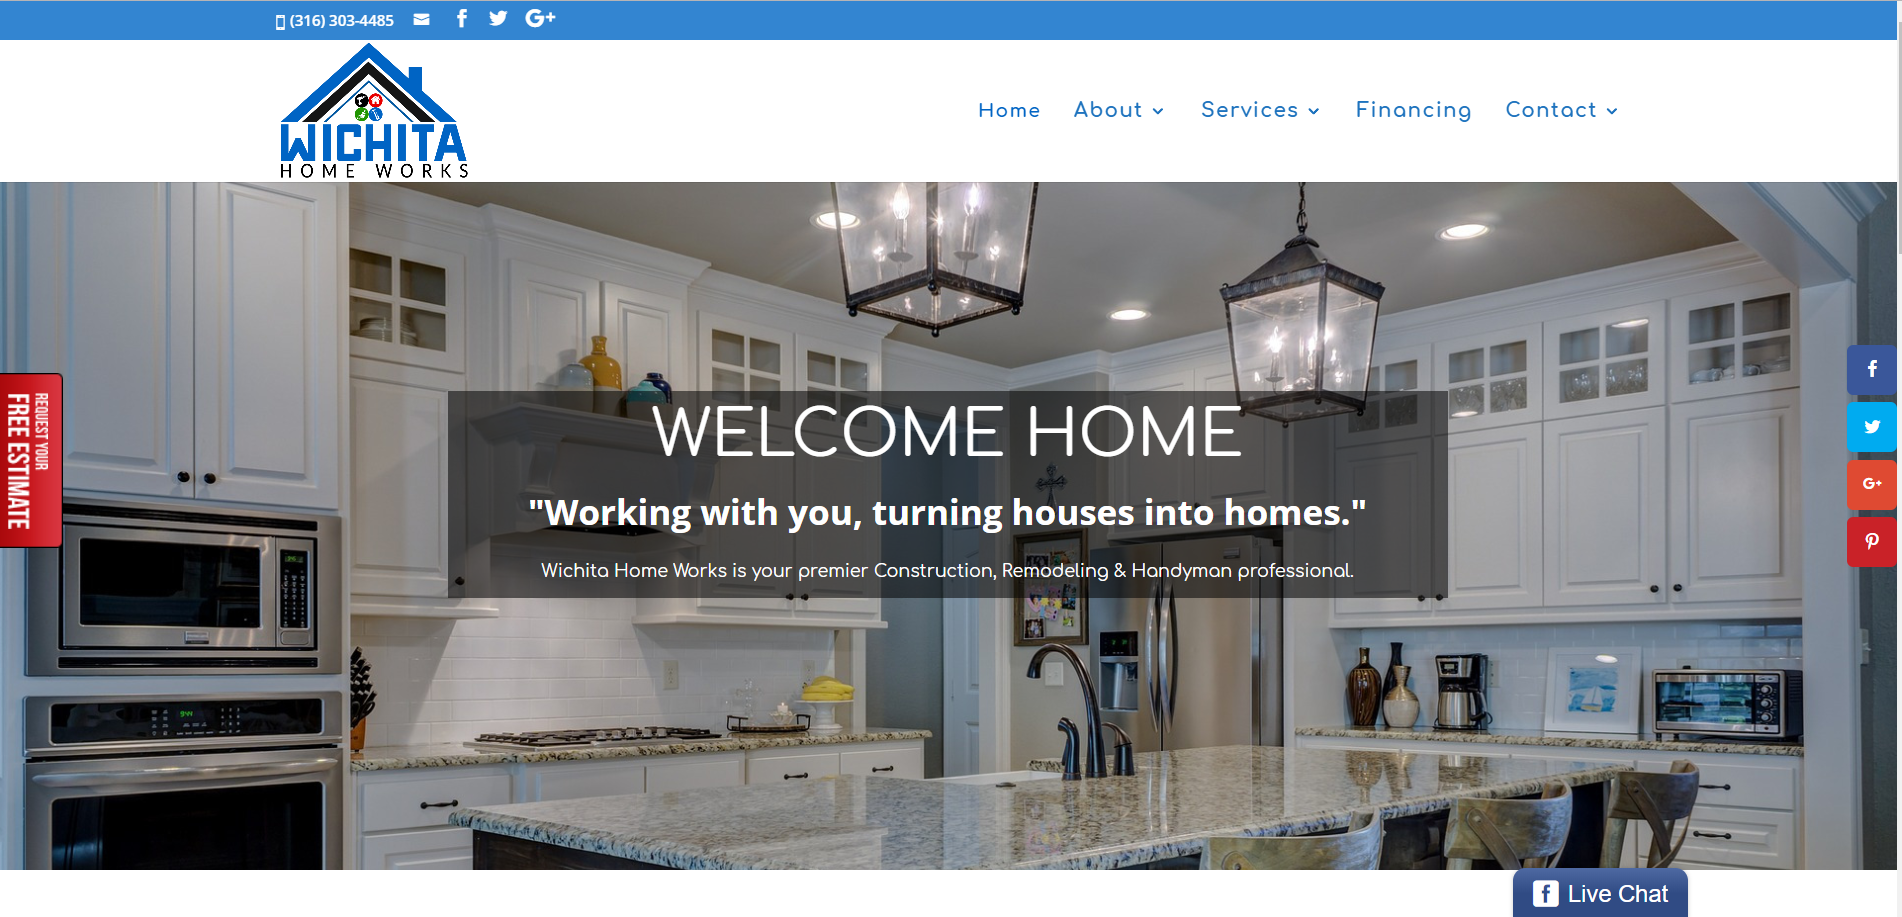 Wichita Home Works website